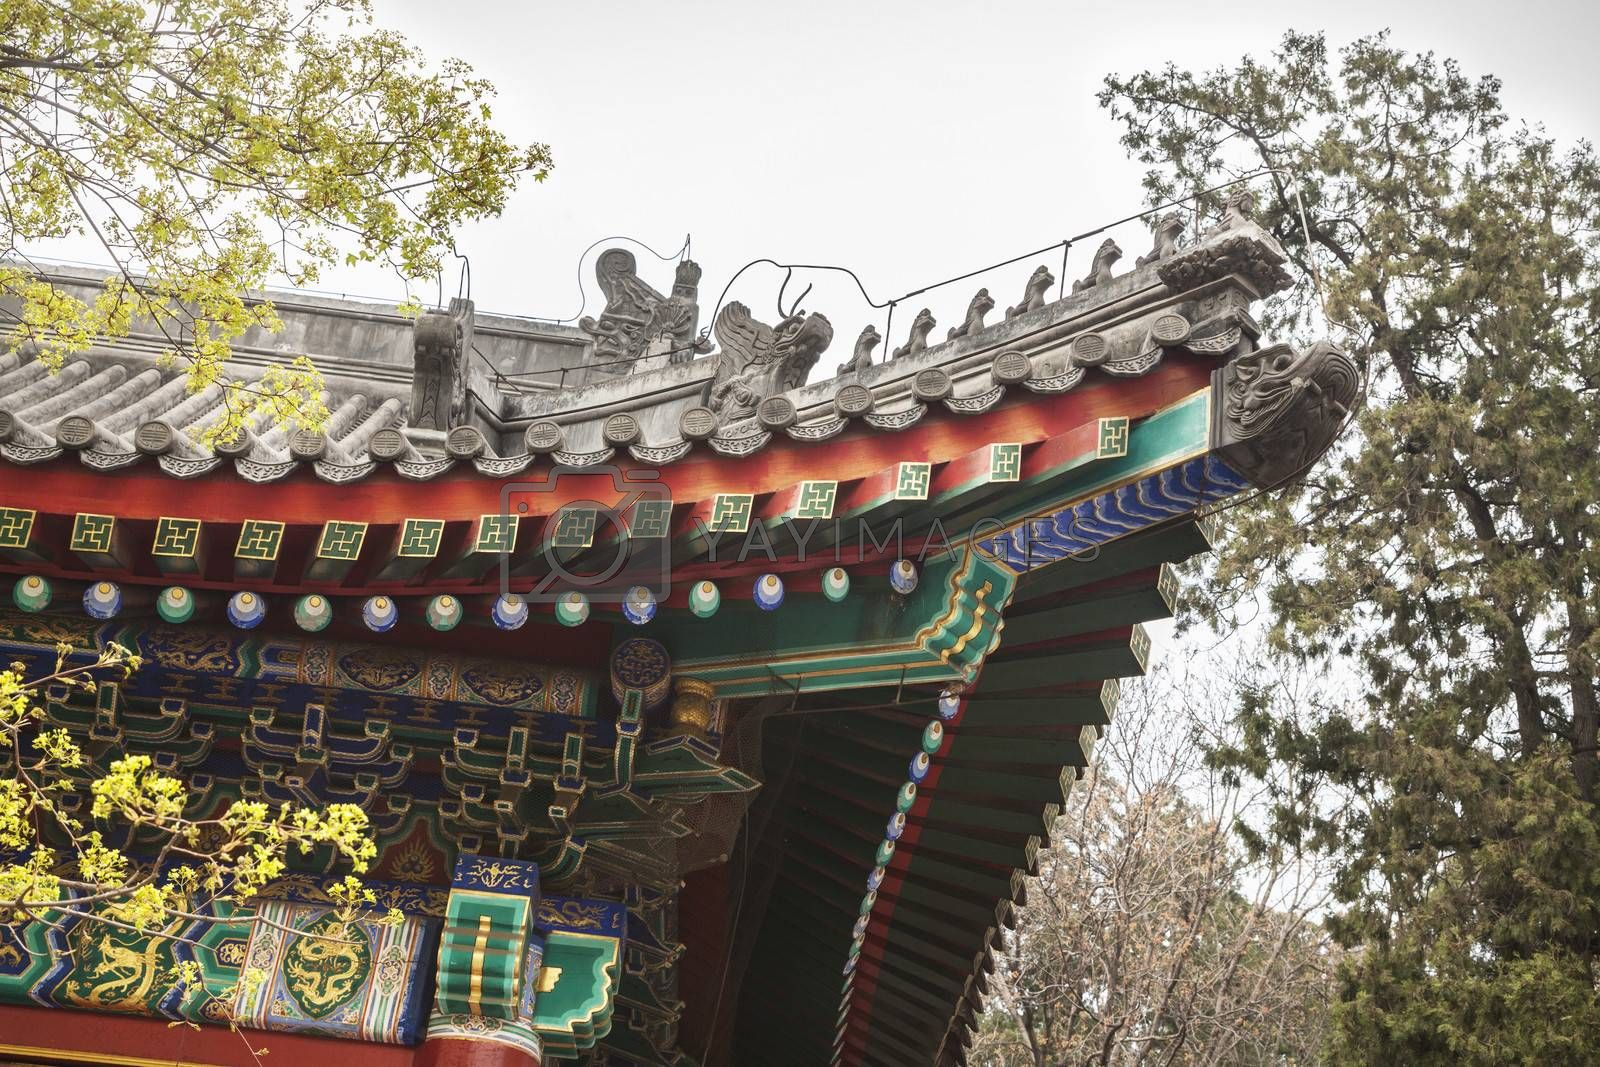 Close-up of ornate Chinese rooftop.